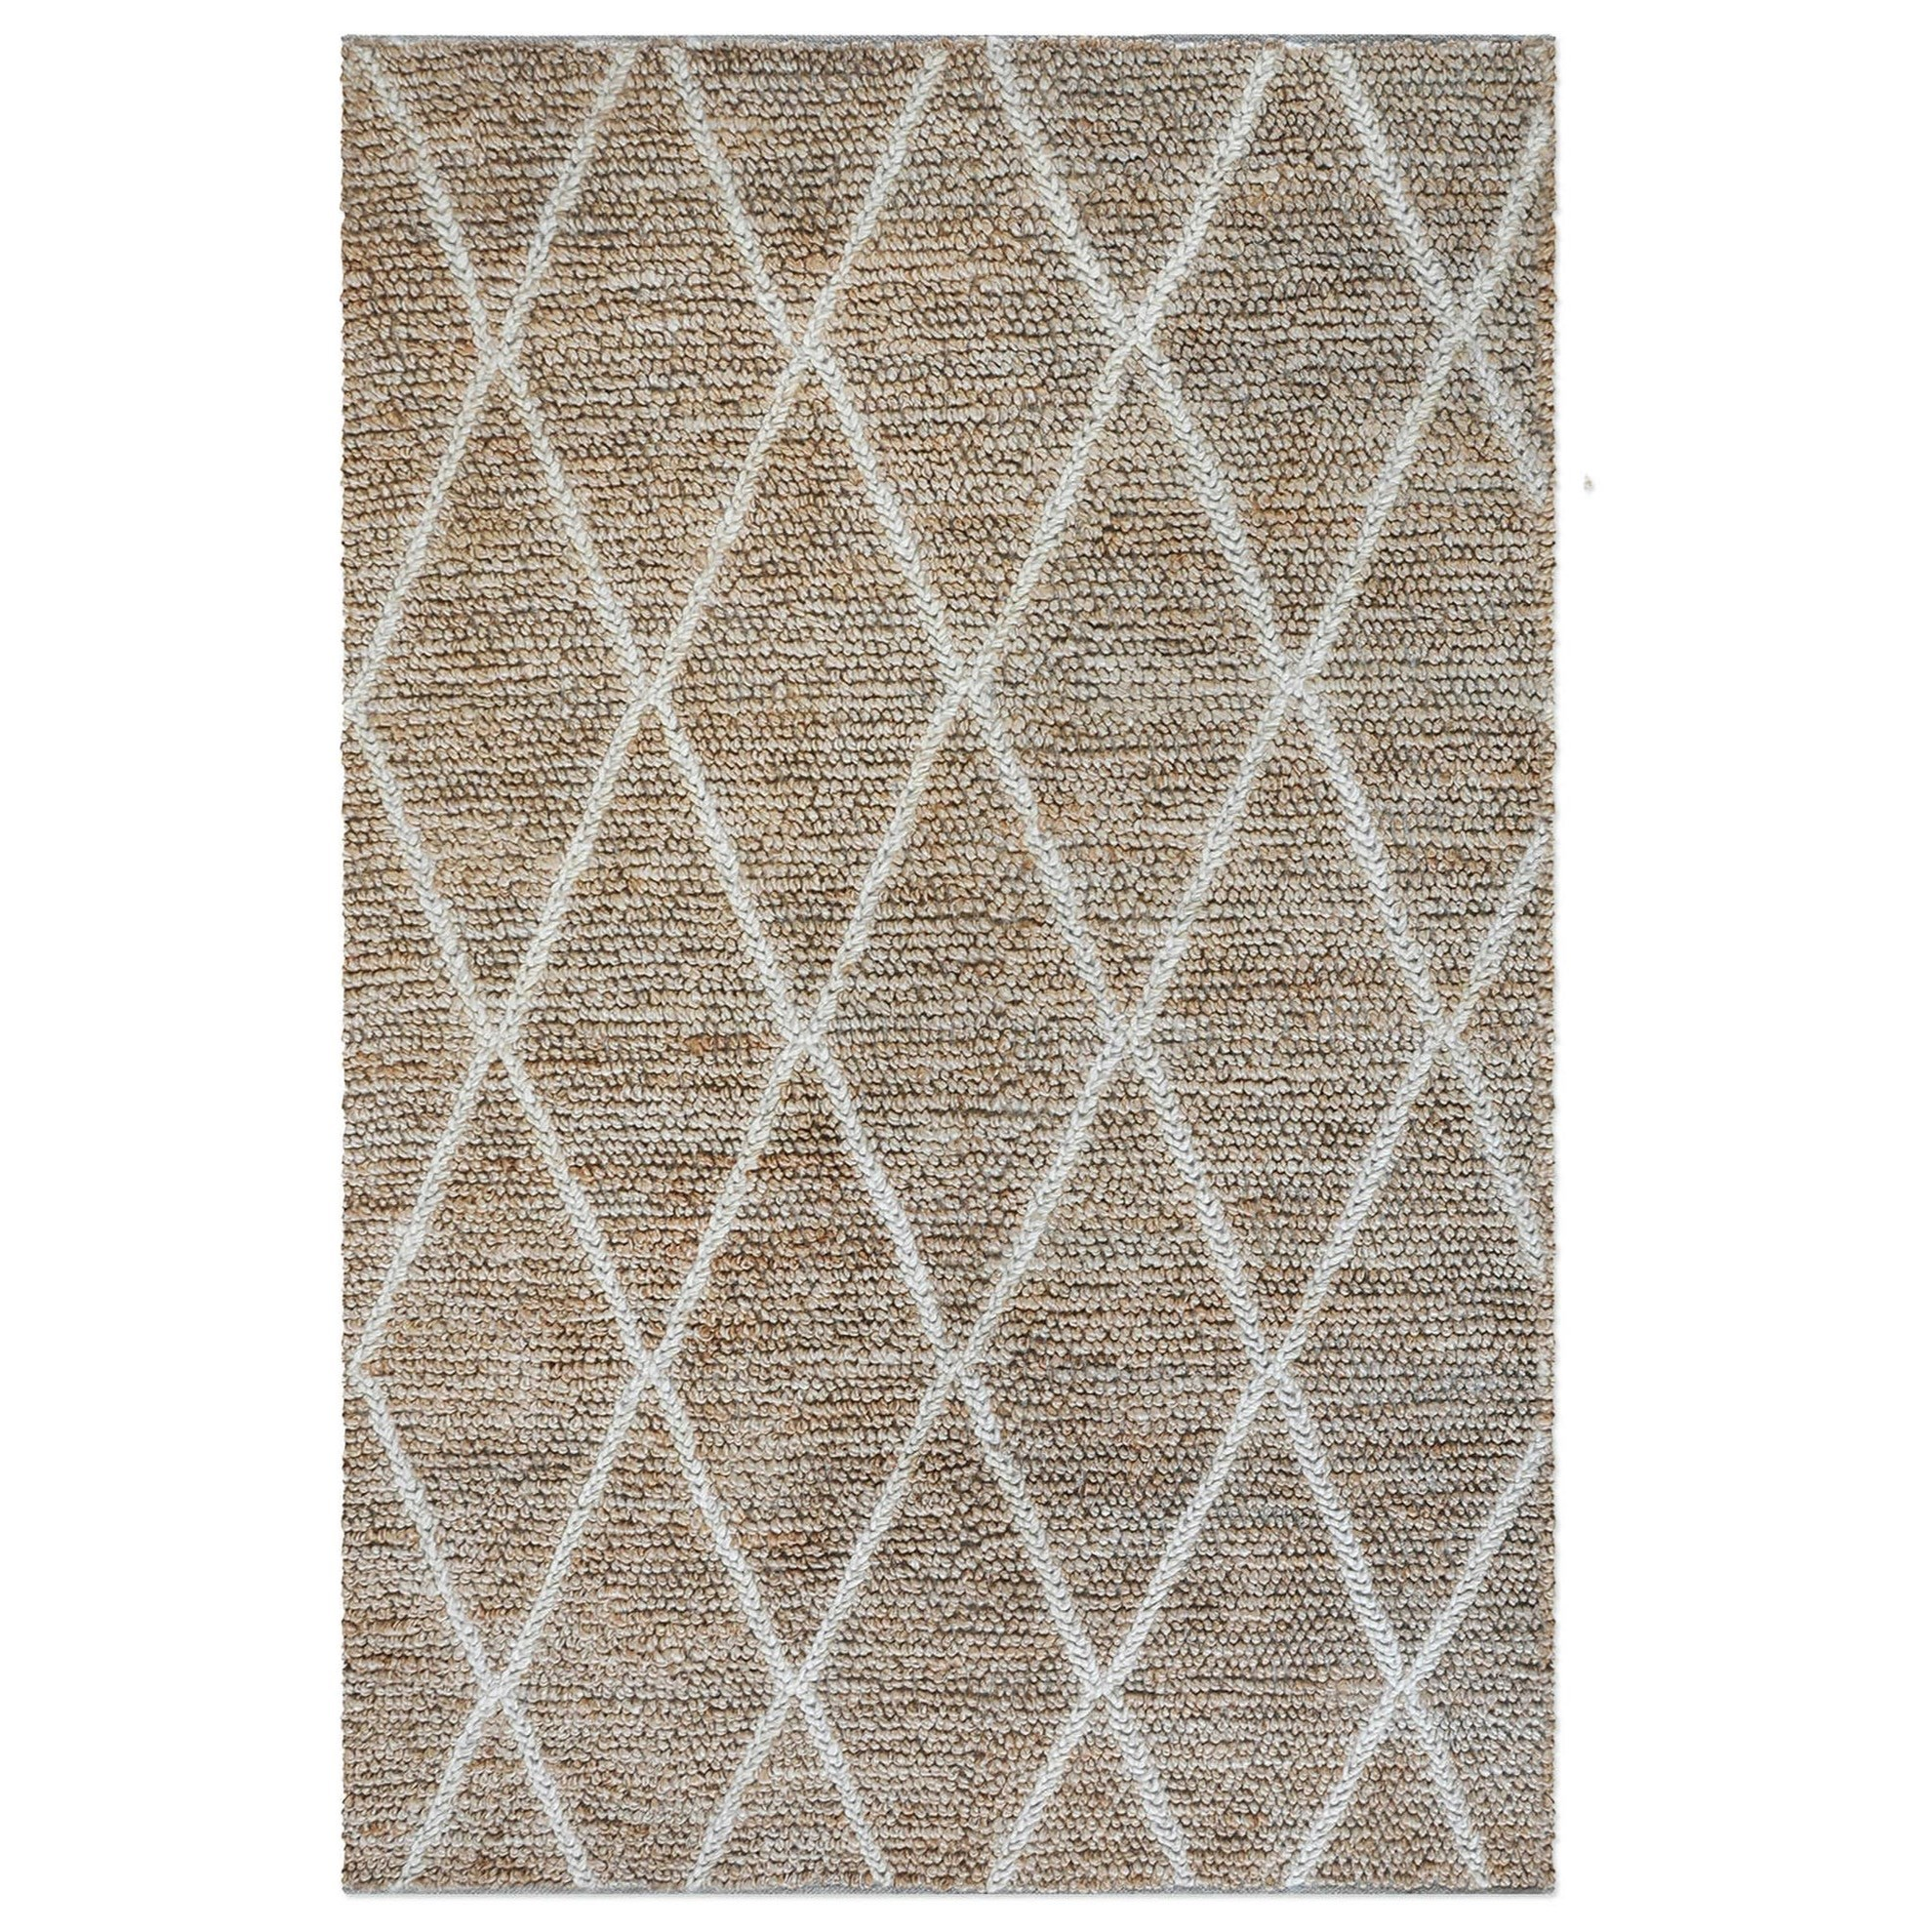 Rugs Larson Ivory 5 x 8 Rug by Uttermost at Adcock Furniture